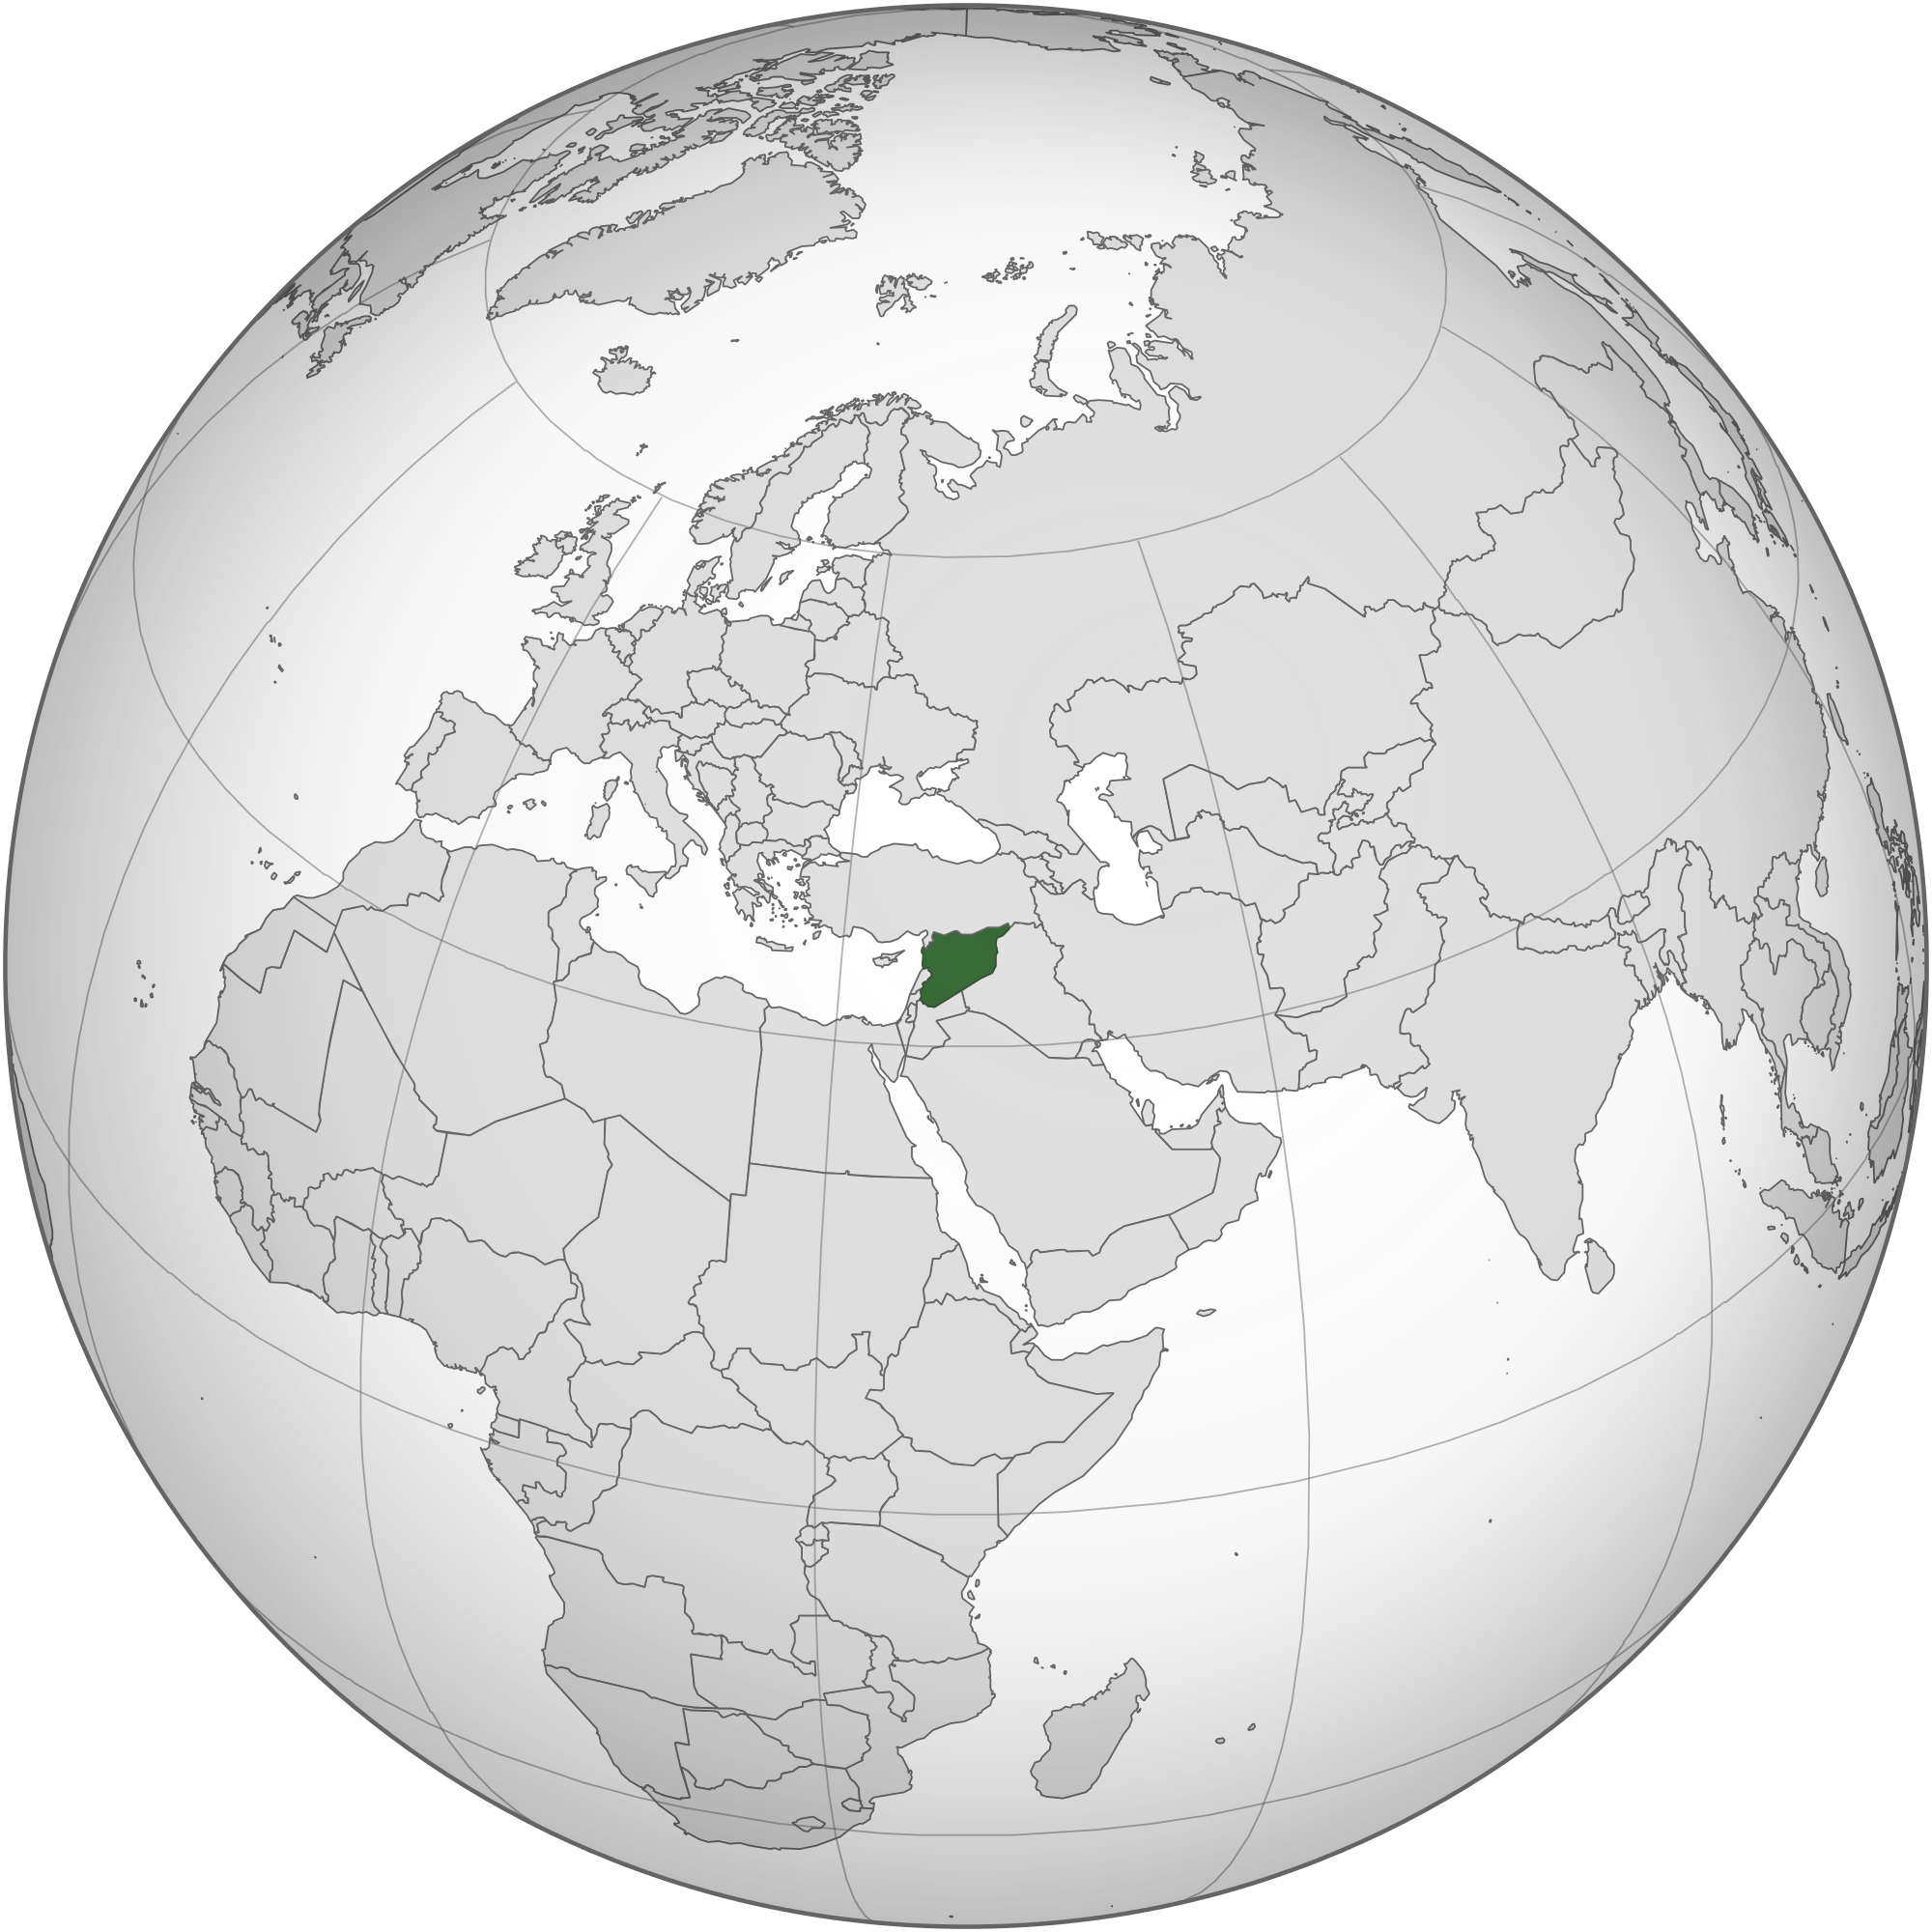 Syria. Wikipedia location of